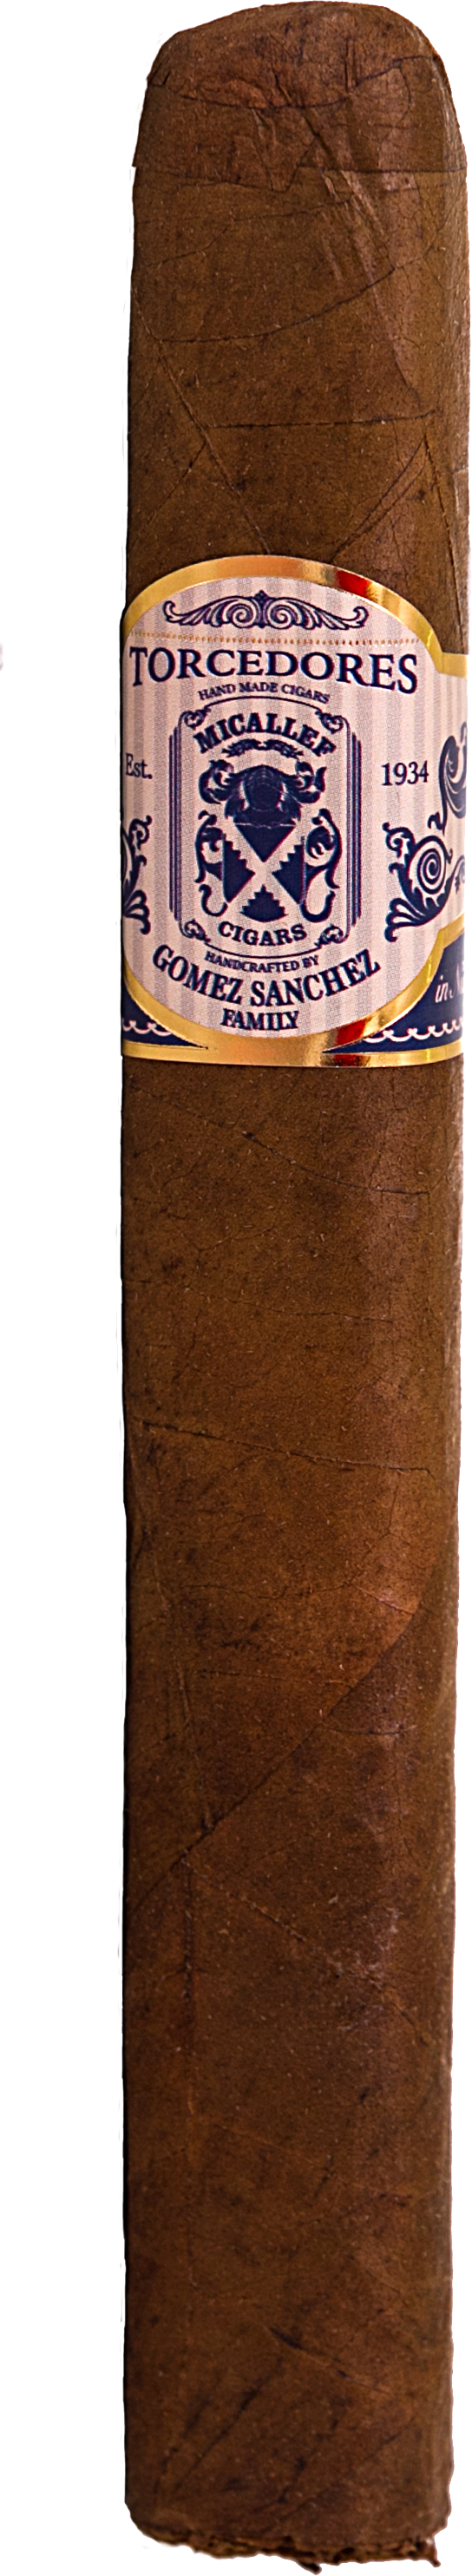 Micallef Cigars Torcedores Churchill